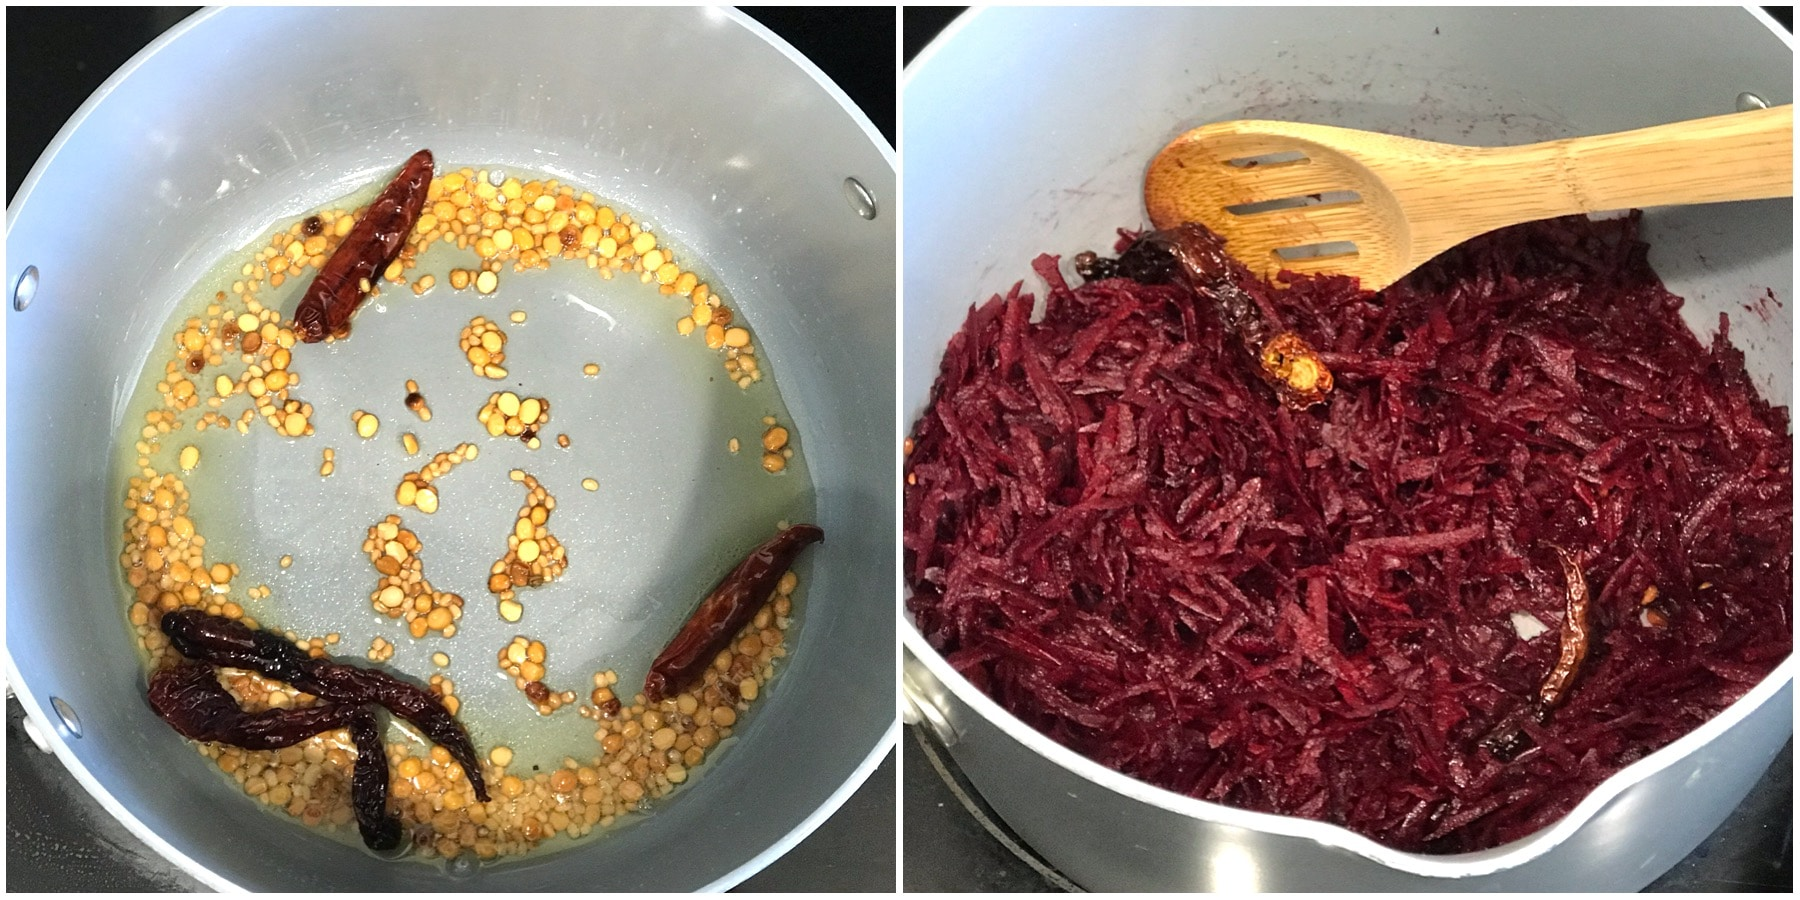 A pan is on the stove top with spices and grated beetroot